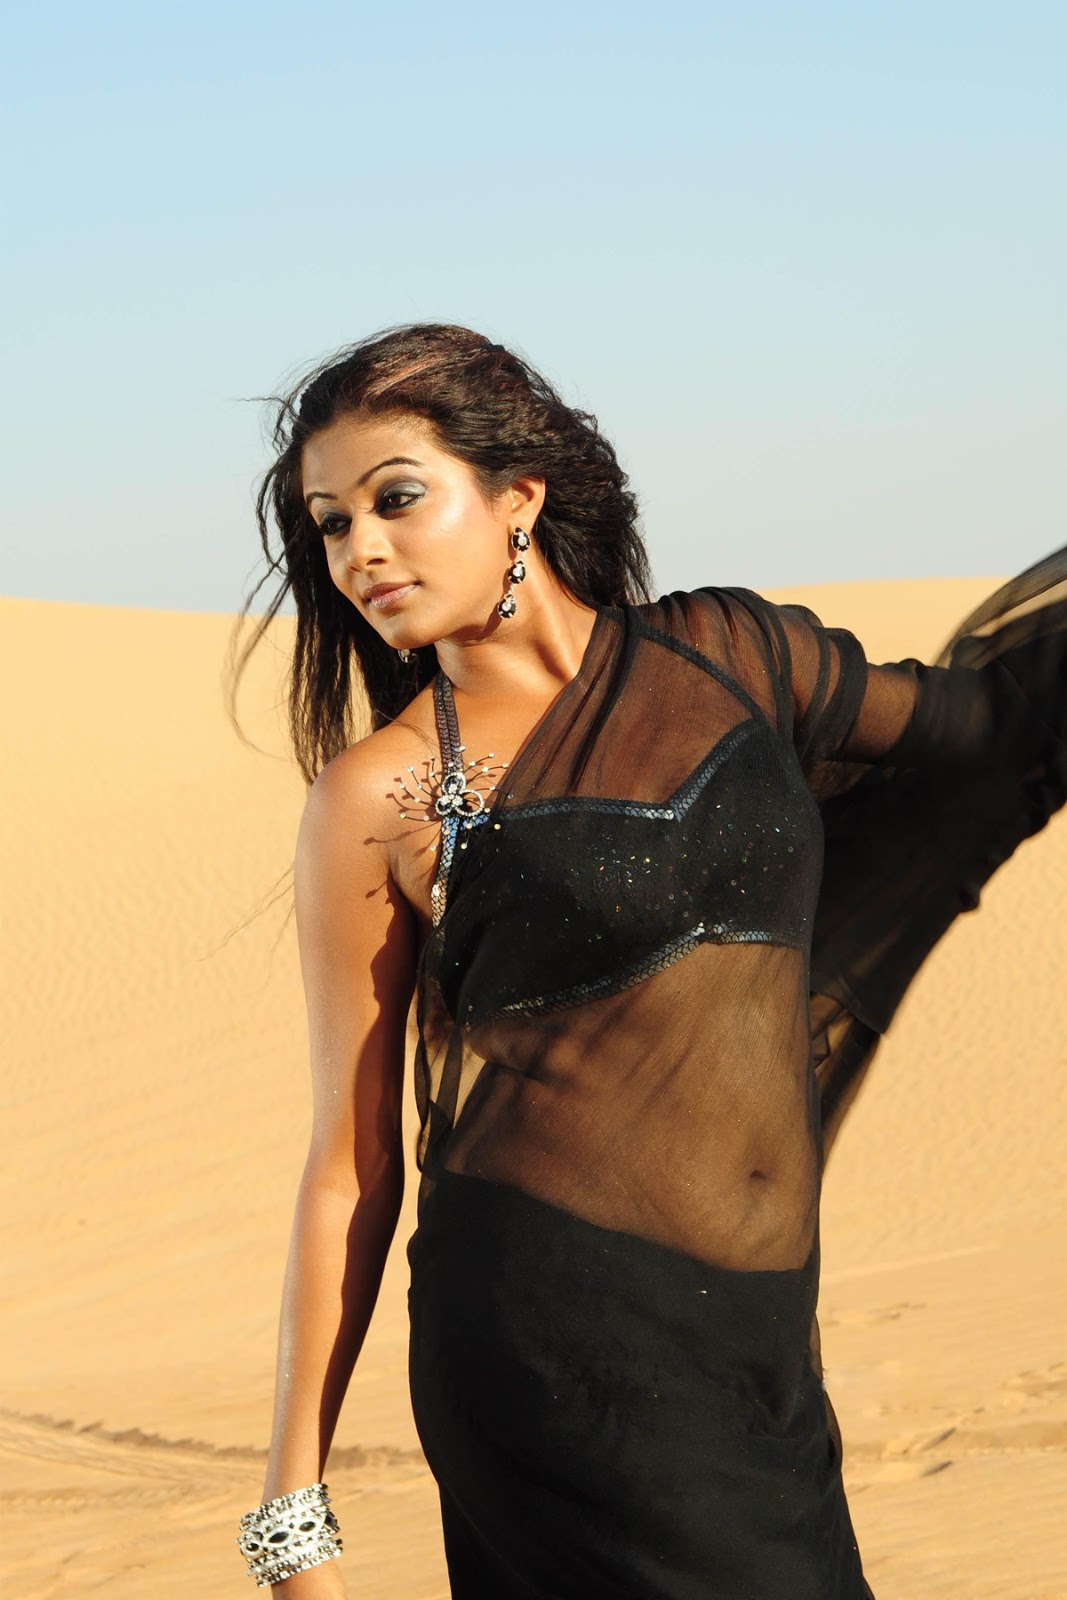 ... wallpaper, Priyamani wallpapers free download, Priyamani hot pictures